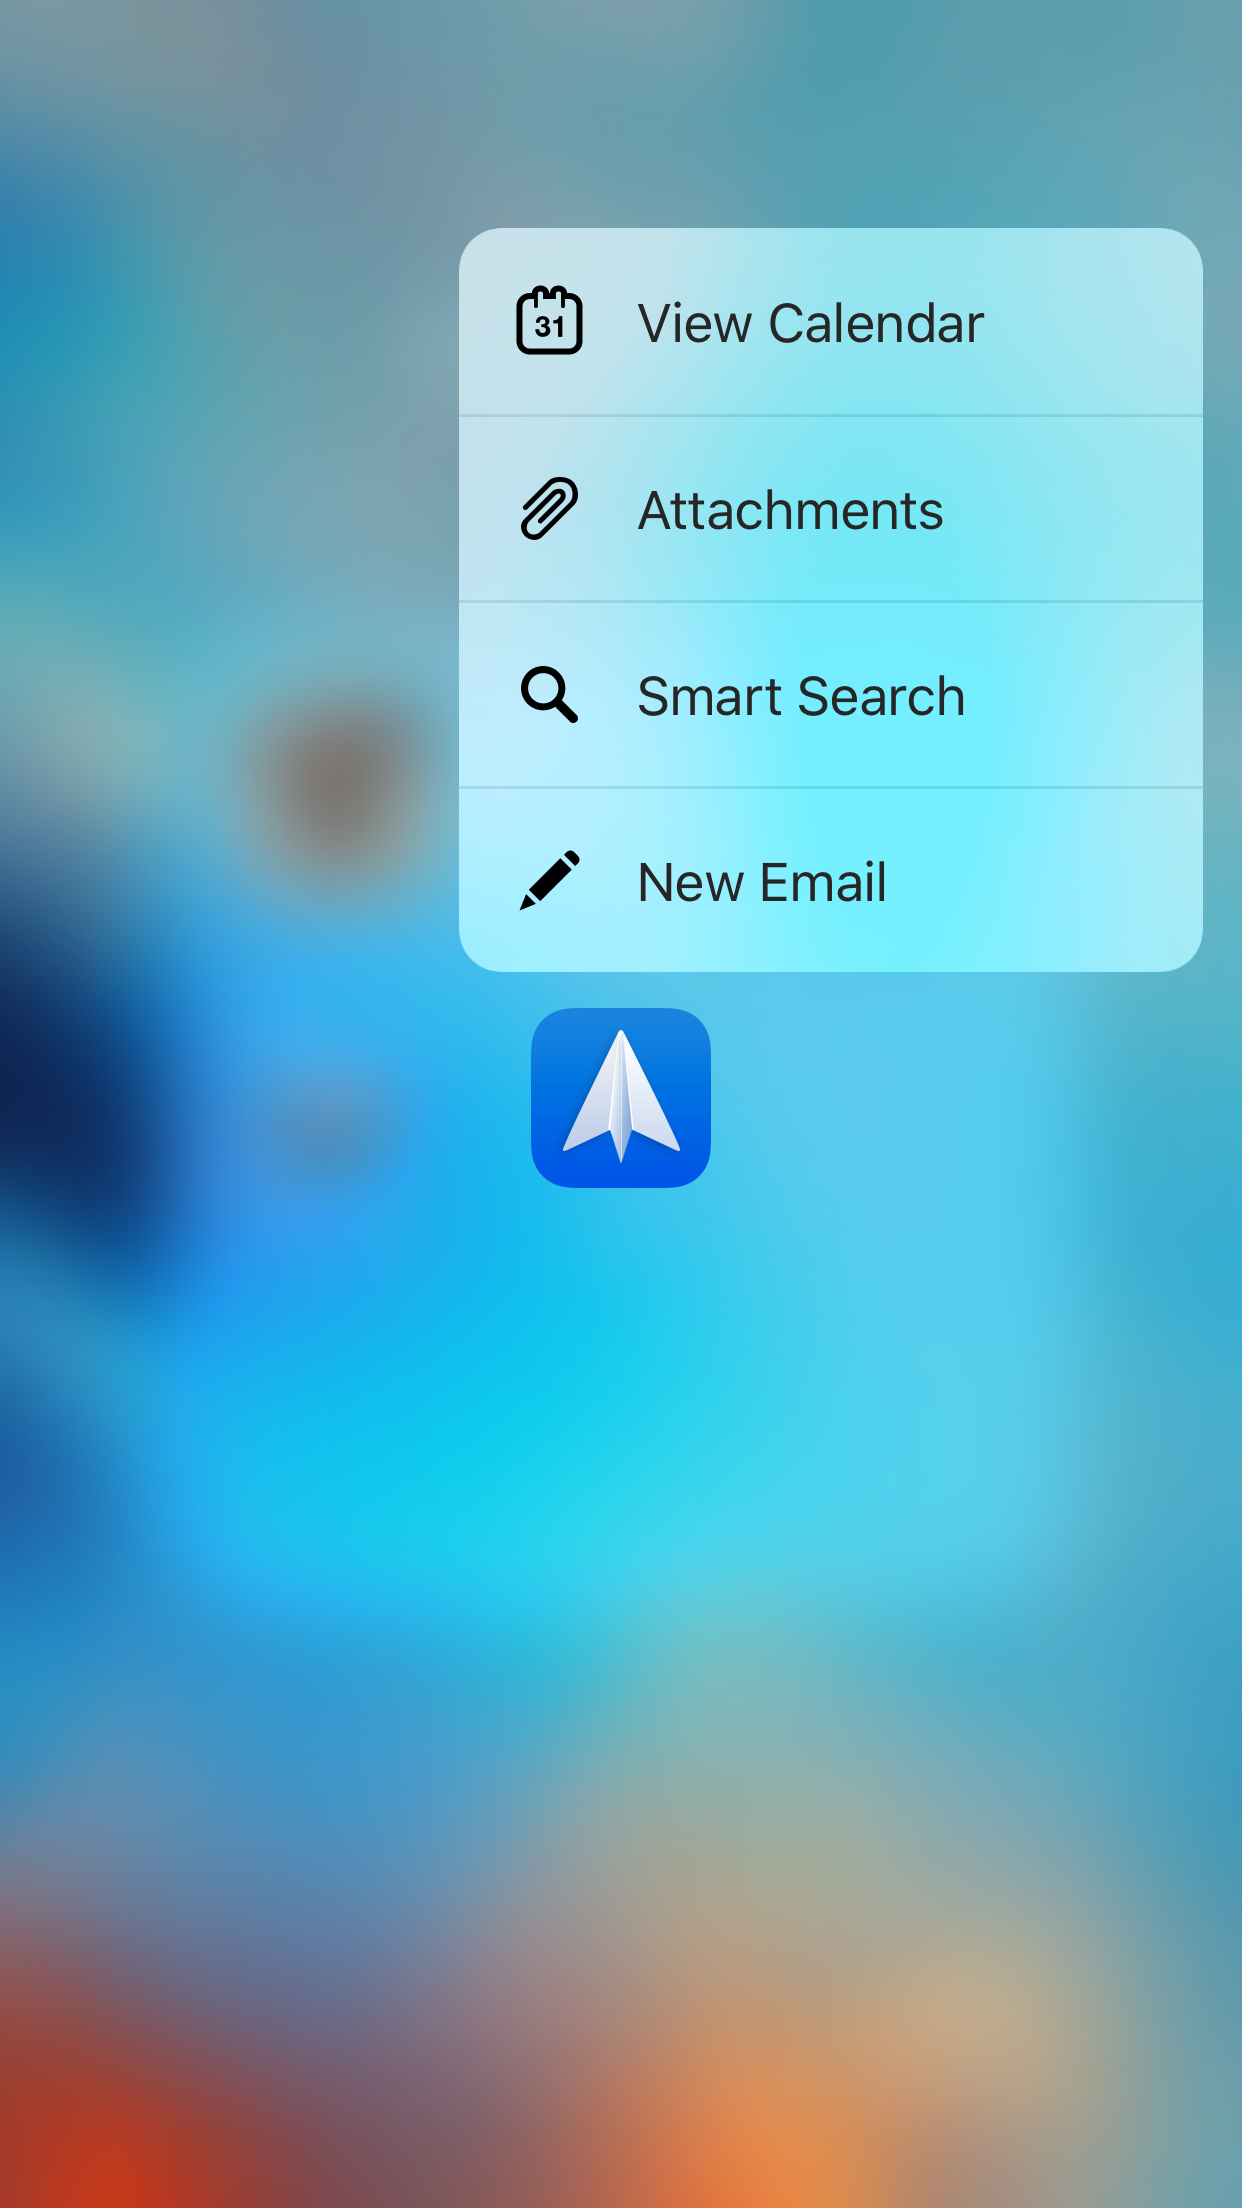 [VIDEO] How does the 3D Touch in third-party applications on the iPhone 6s Plus65 review